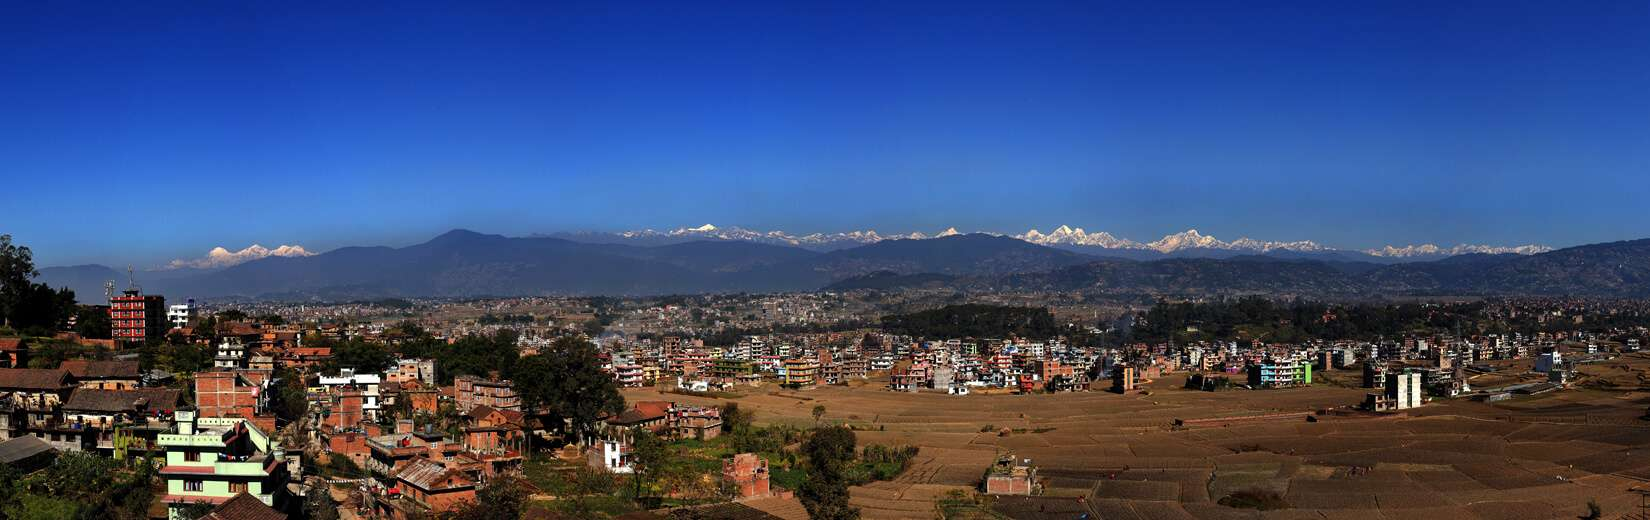 5 Best Things to do in Nepal in 2021